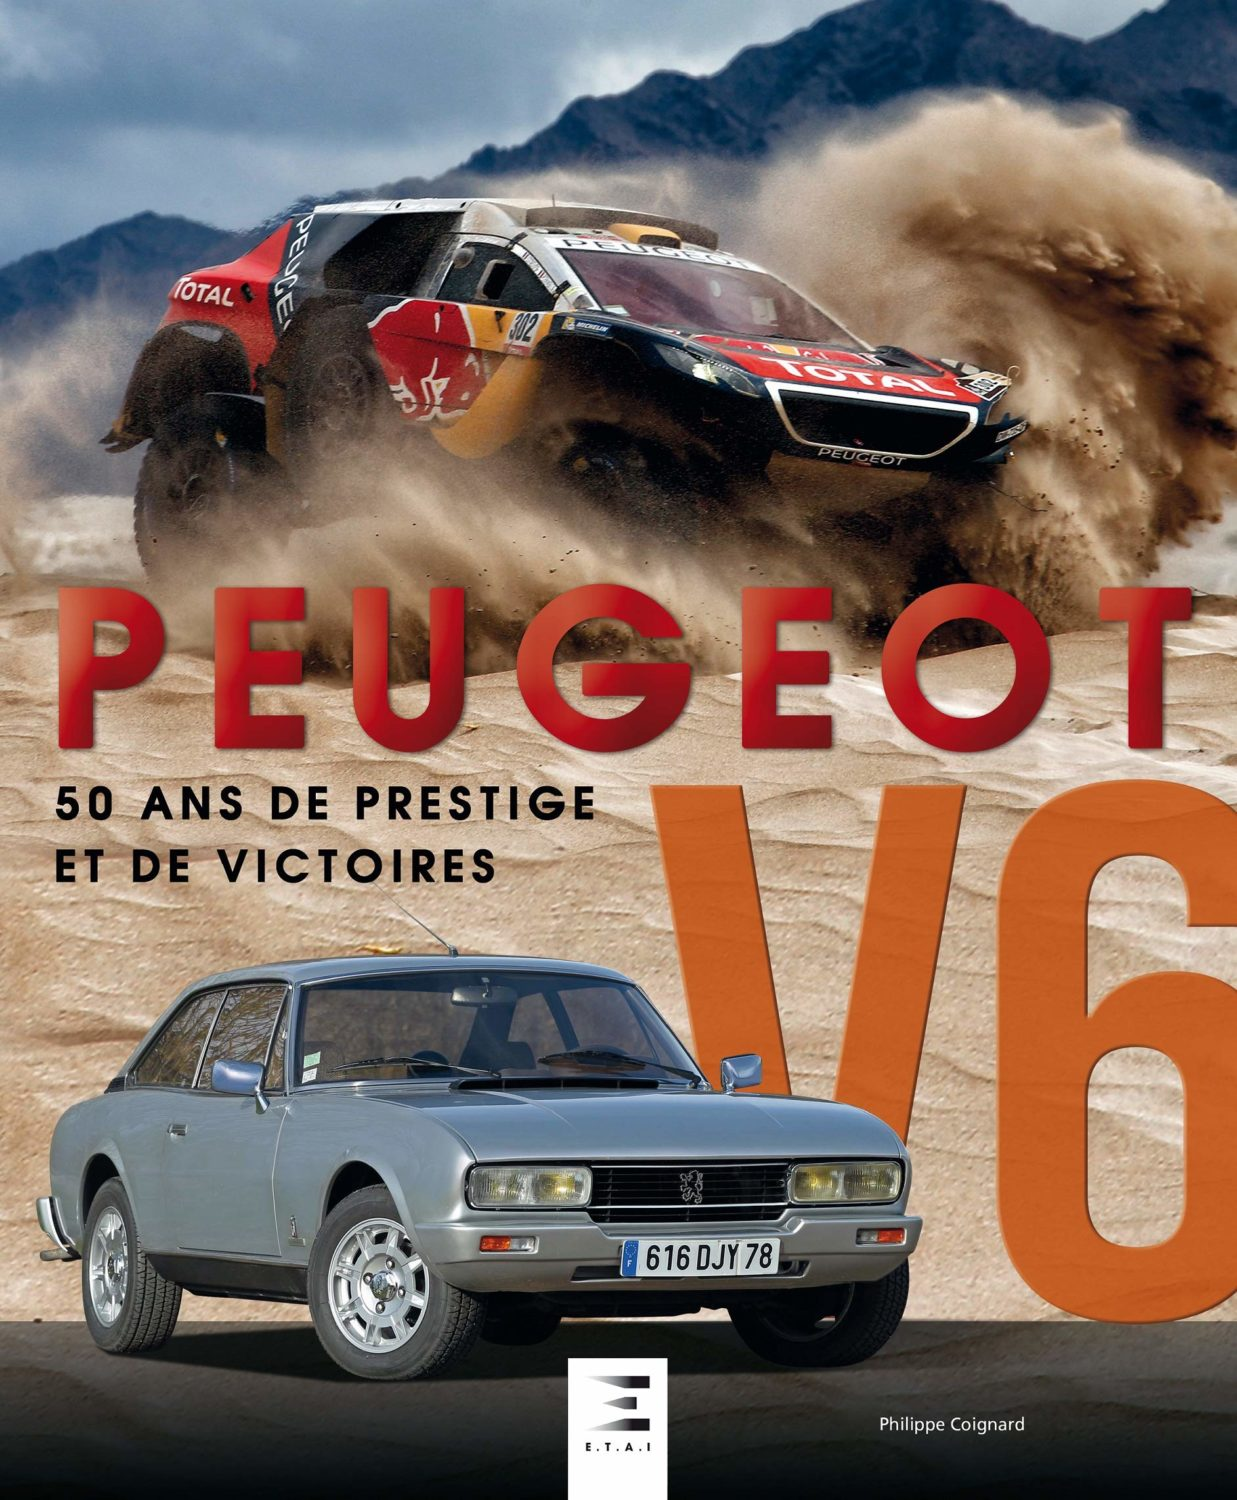 Peugeot V6 : 50 ans de prestige et de victoires